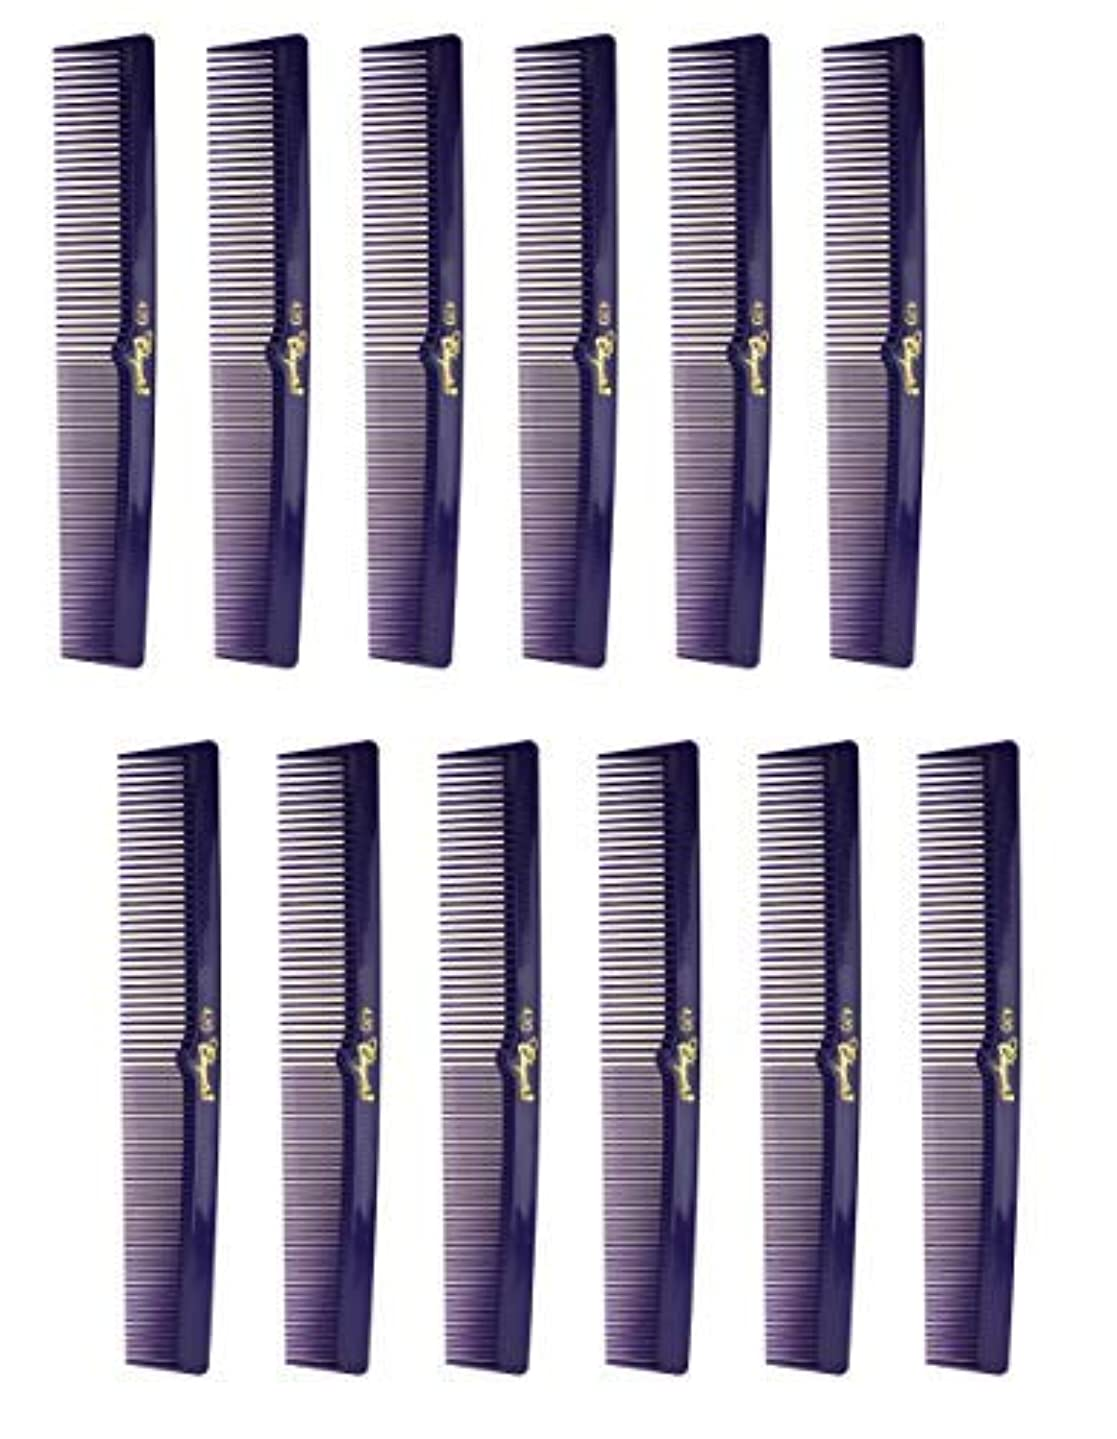 合図銅ヘルパー7 Inch Hair Cutting Combs. Barber's & Hairstylist Combs. Purple 1 DZ. [並行輸入品]